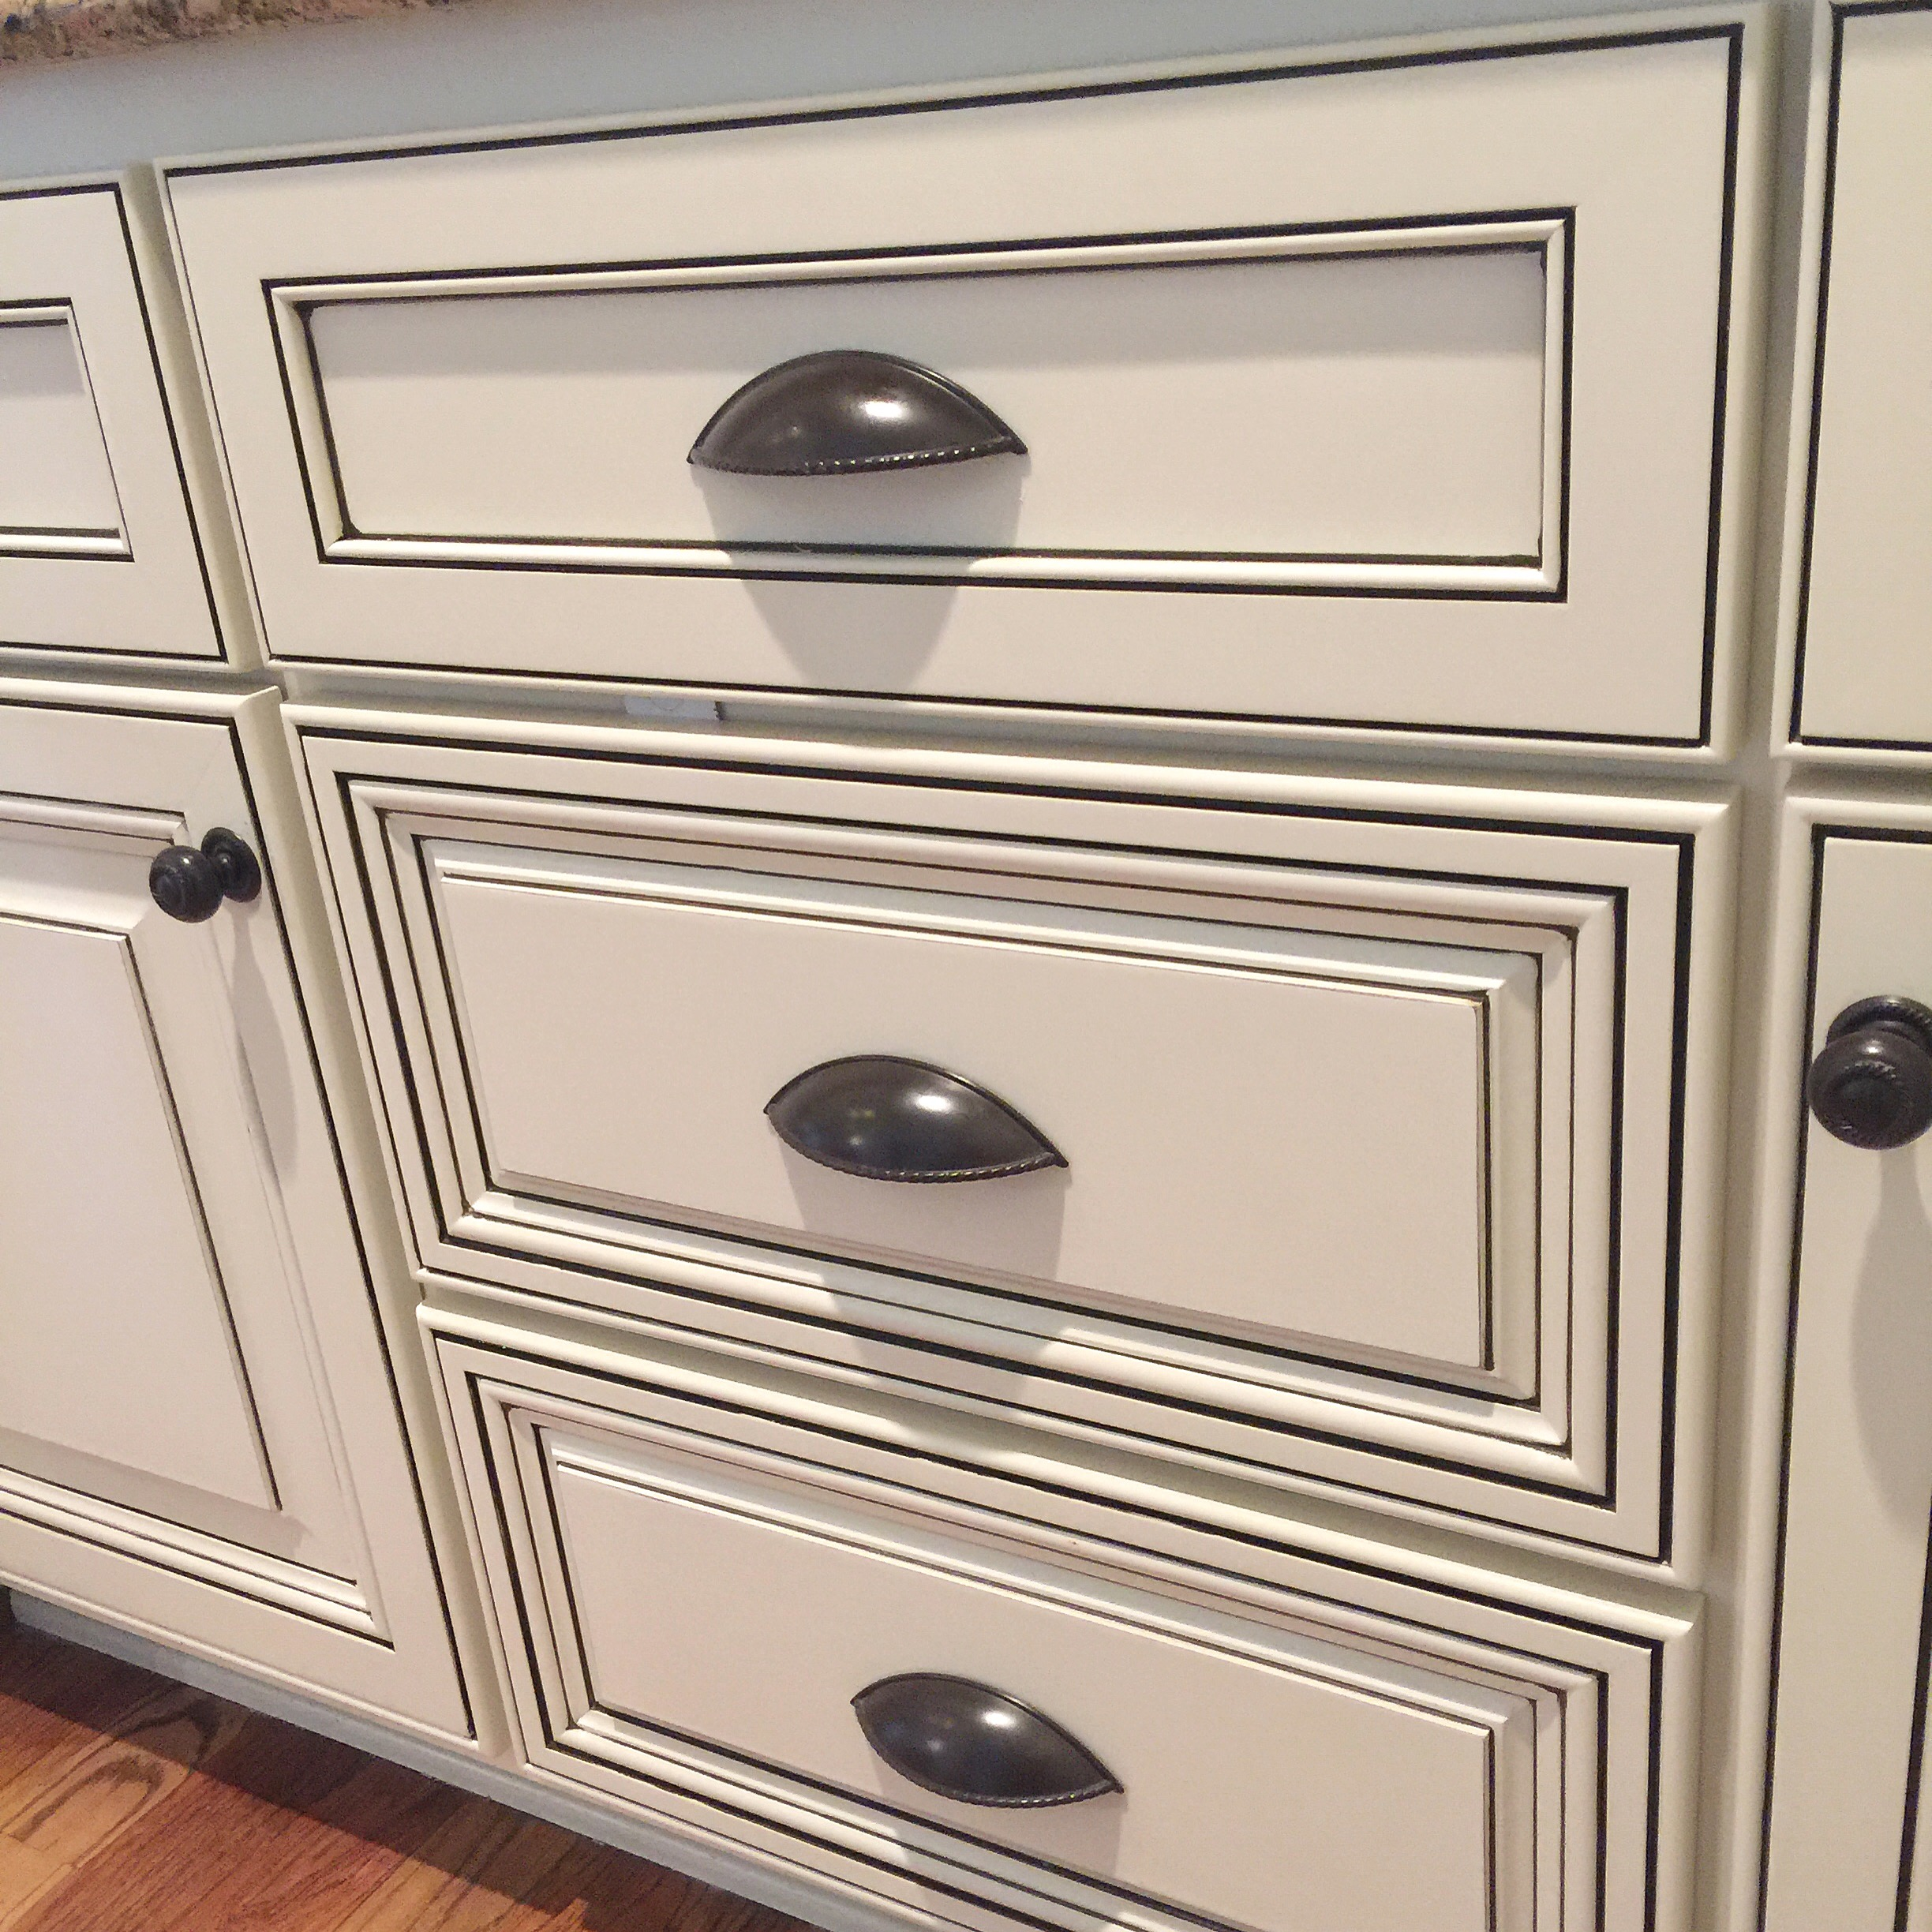 Kitchen Cabinets Glazed what is cabinet glazing? - bella tucker decorative finishes